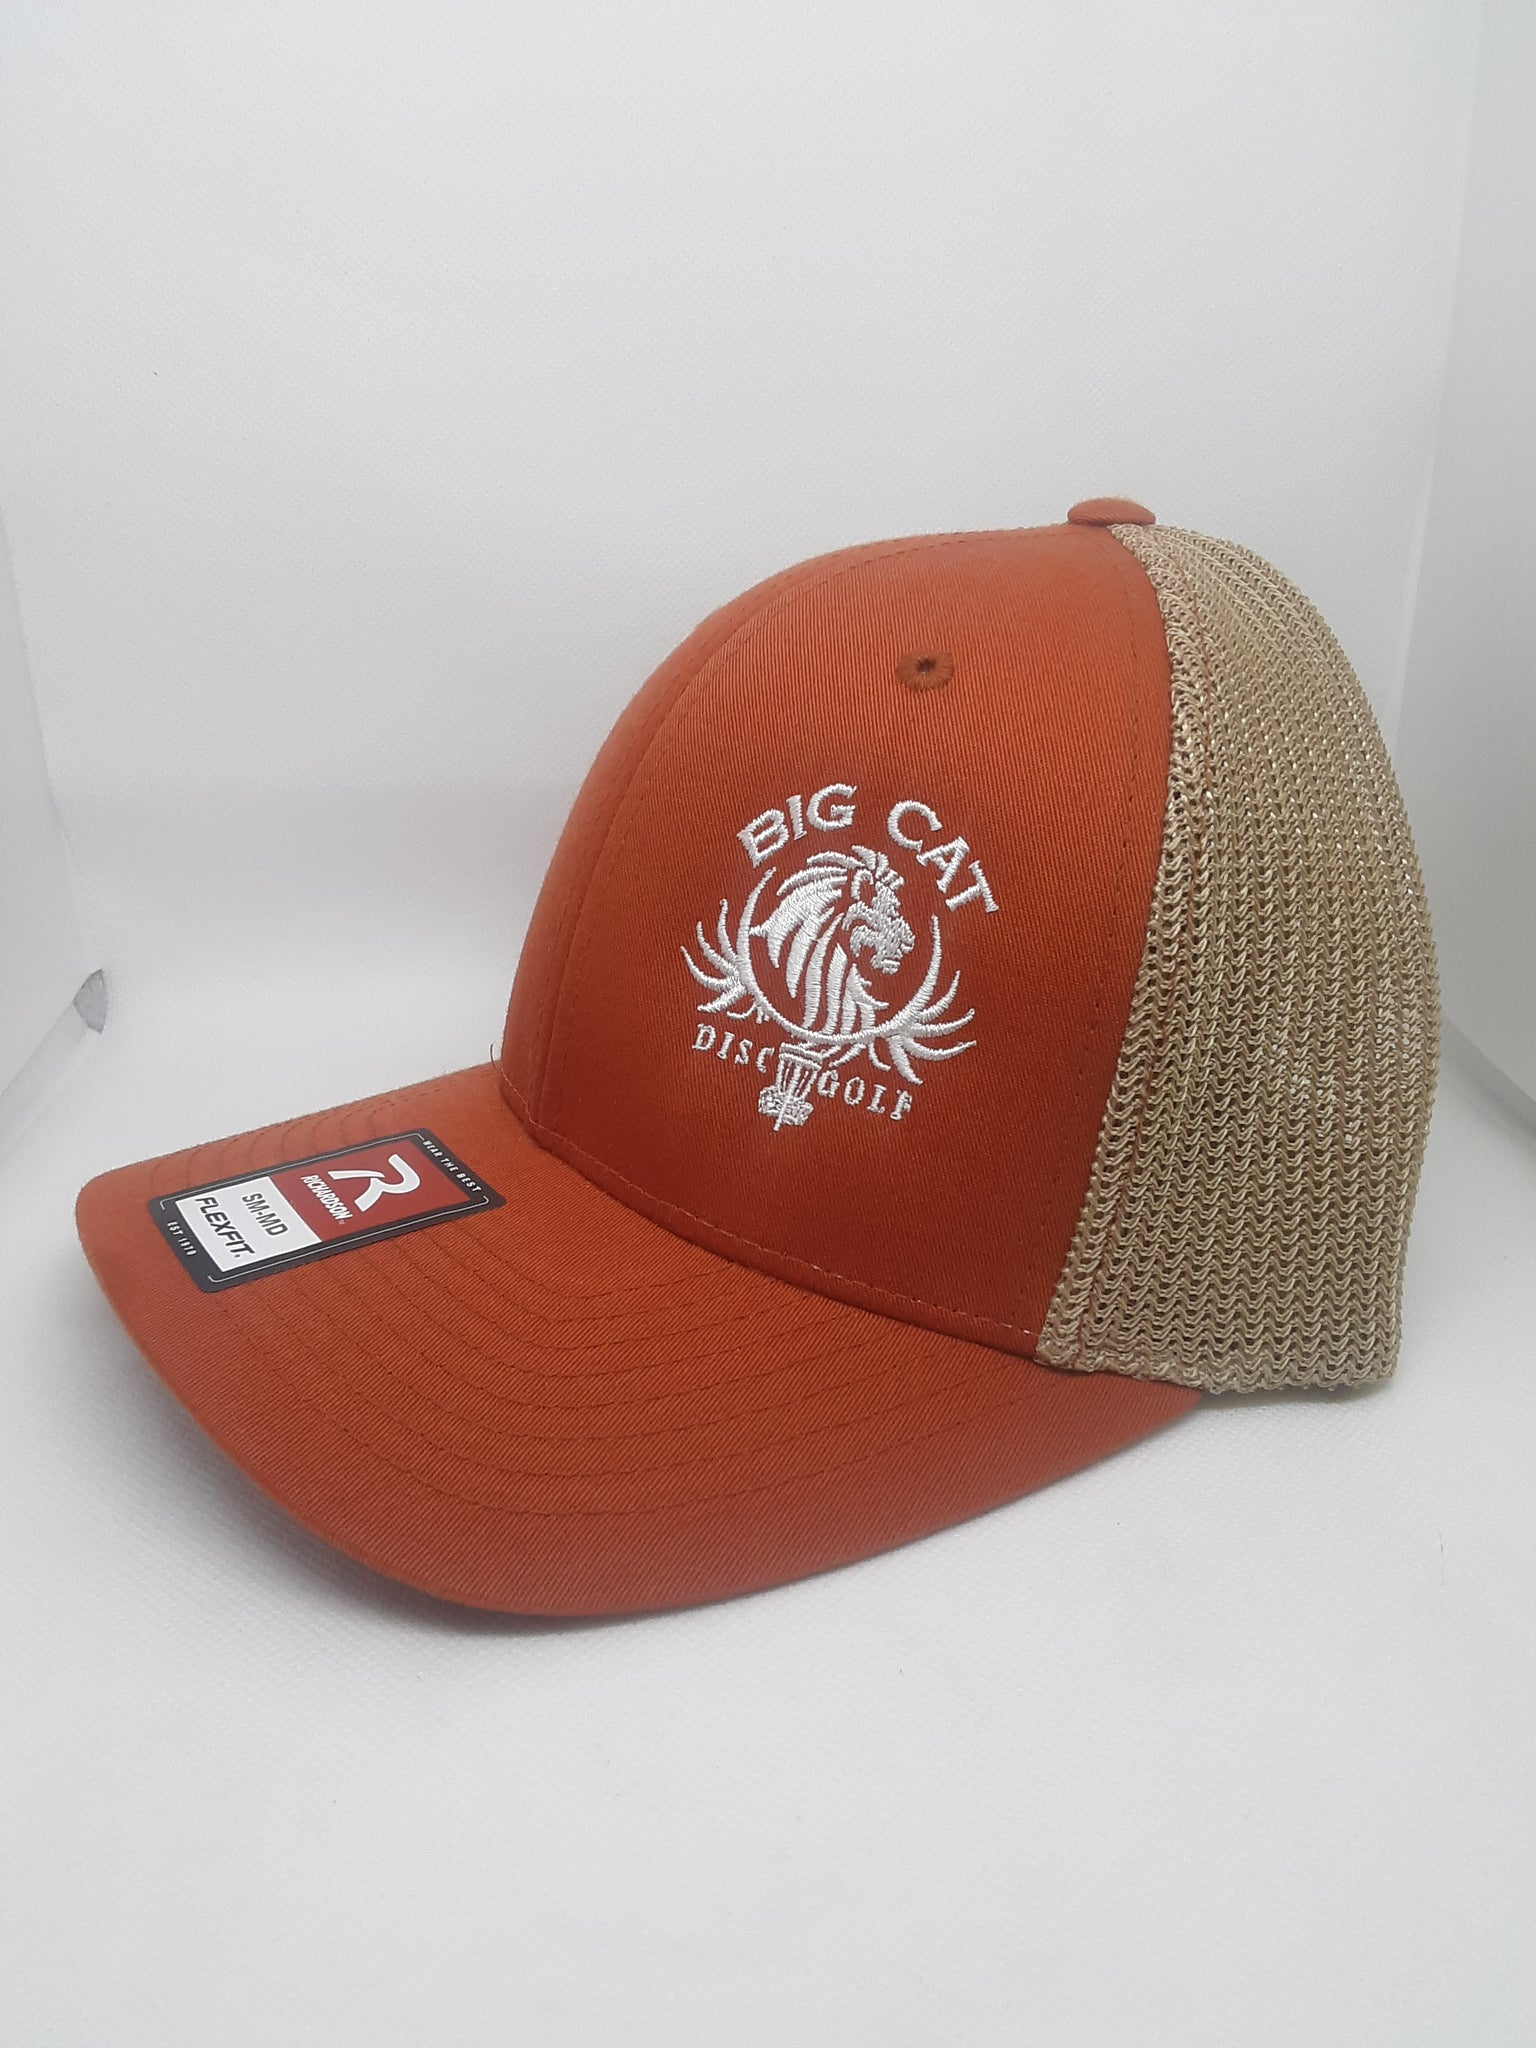 Big Cat Disc Golf Ball Caps ( Flex Fit )